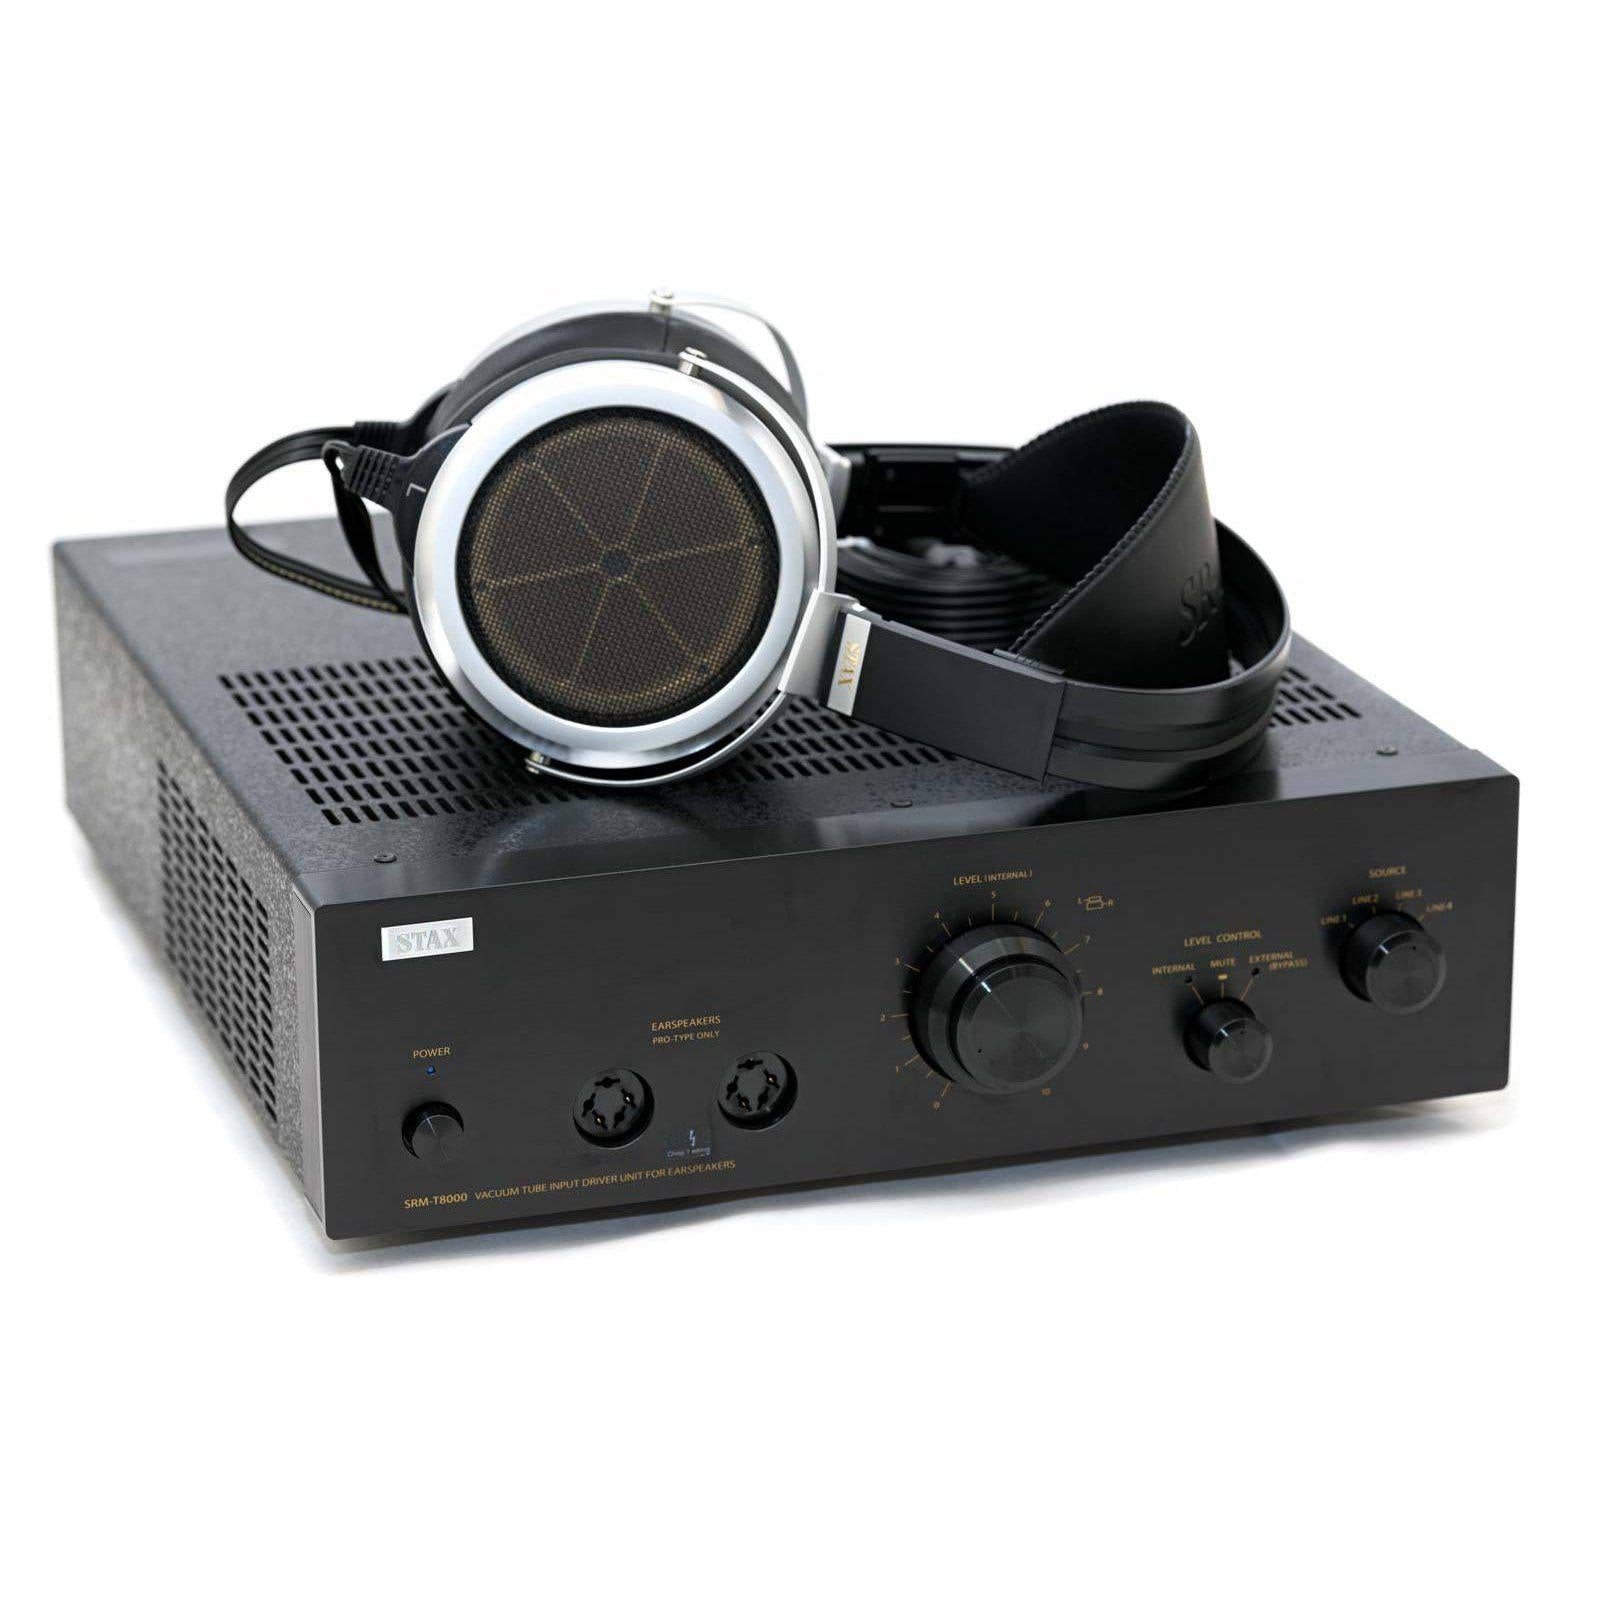 STAX SRM-T8000 Electrostatic Headphone Amplifier